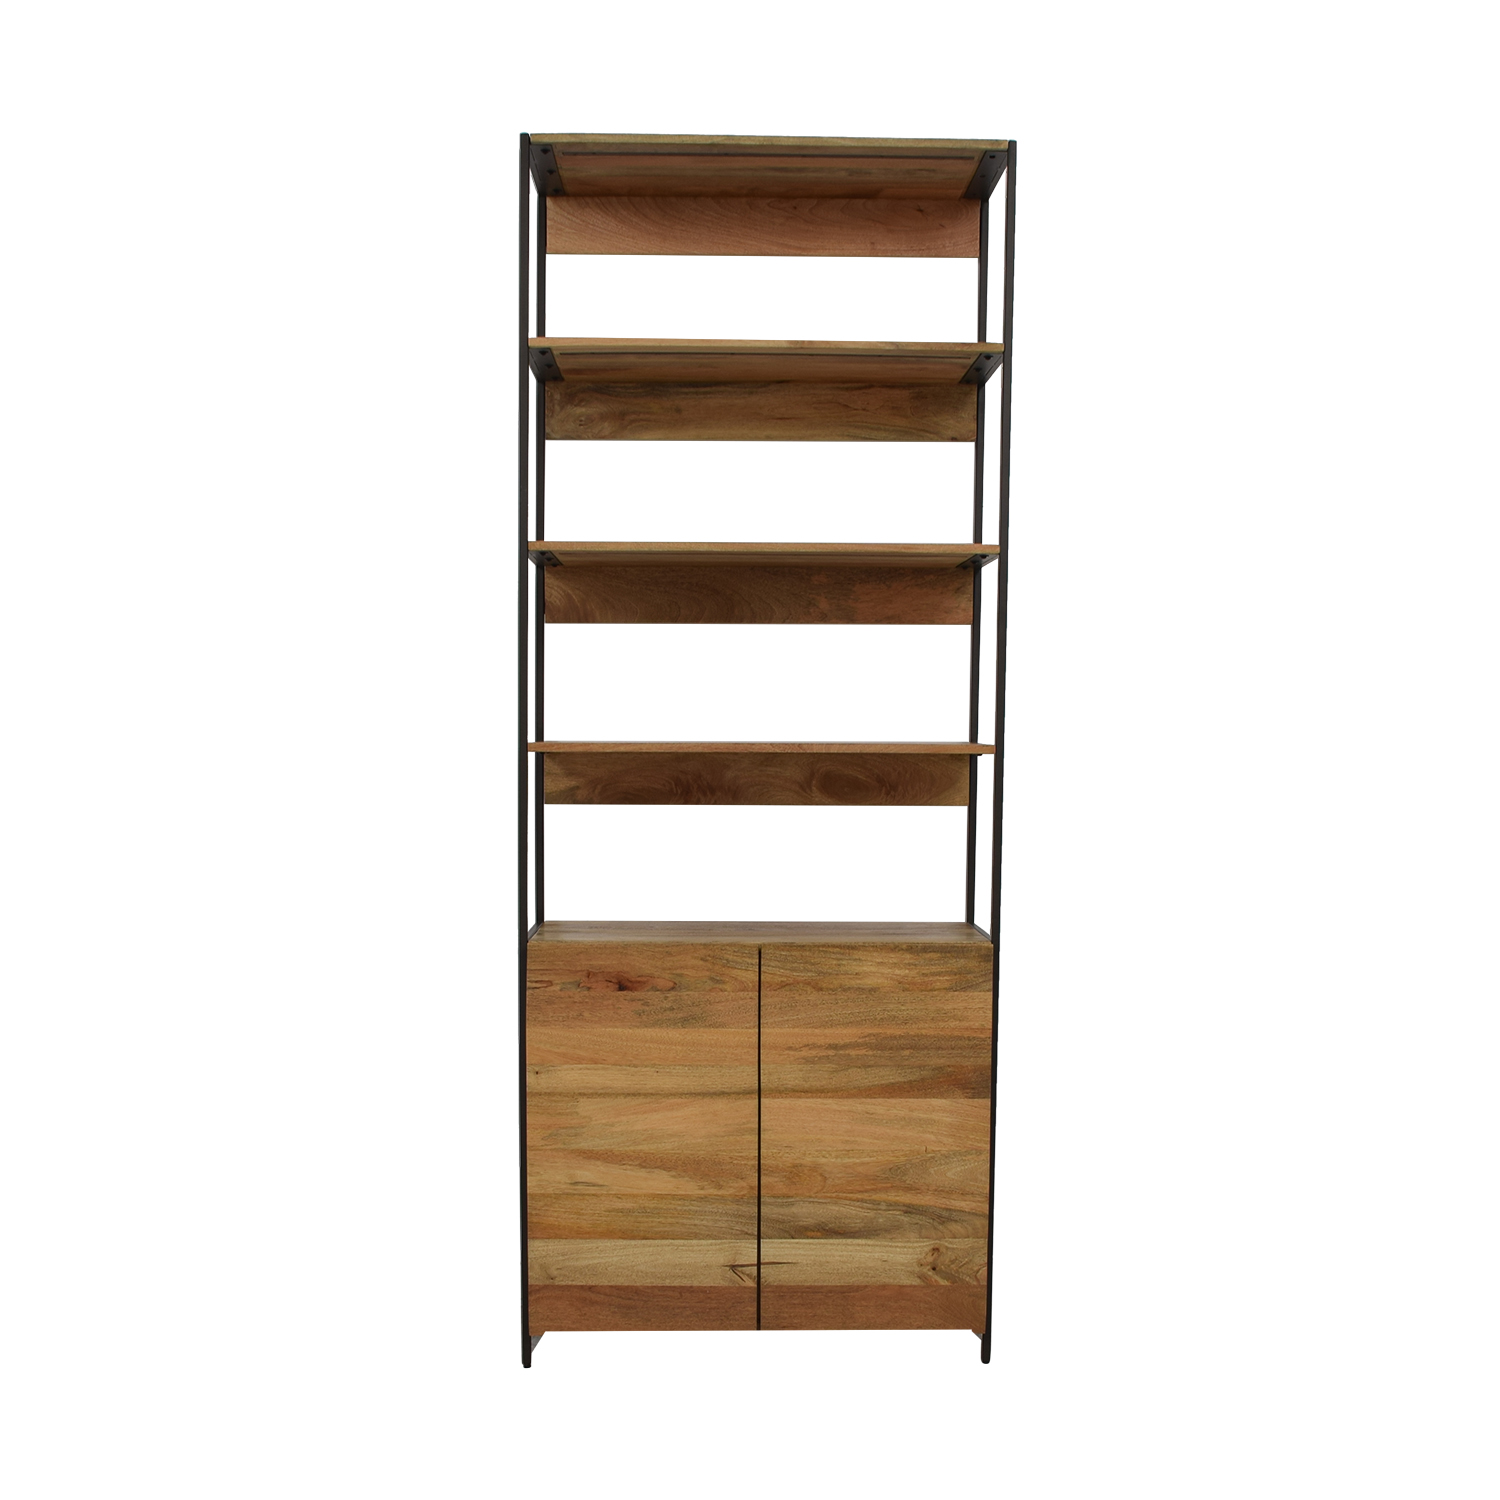 West Elm West Elm Industrial Modular Closed Storage on sale